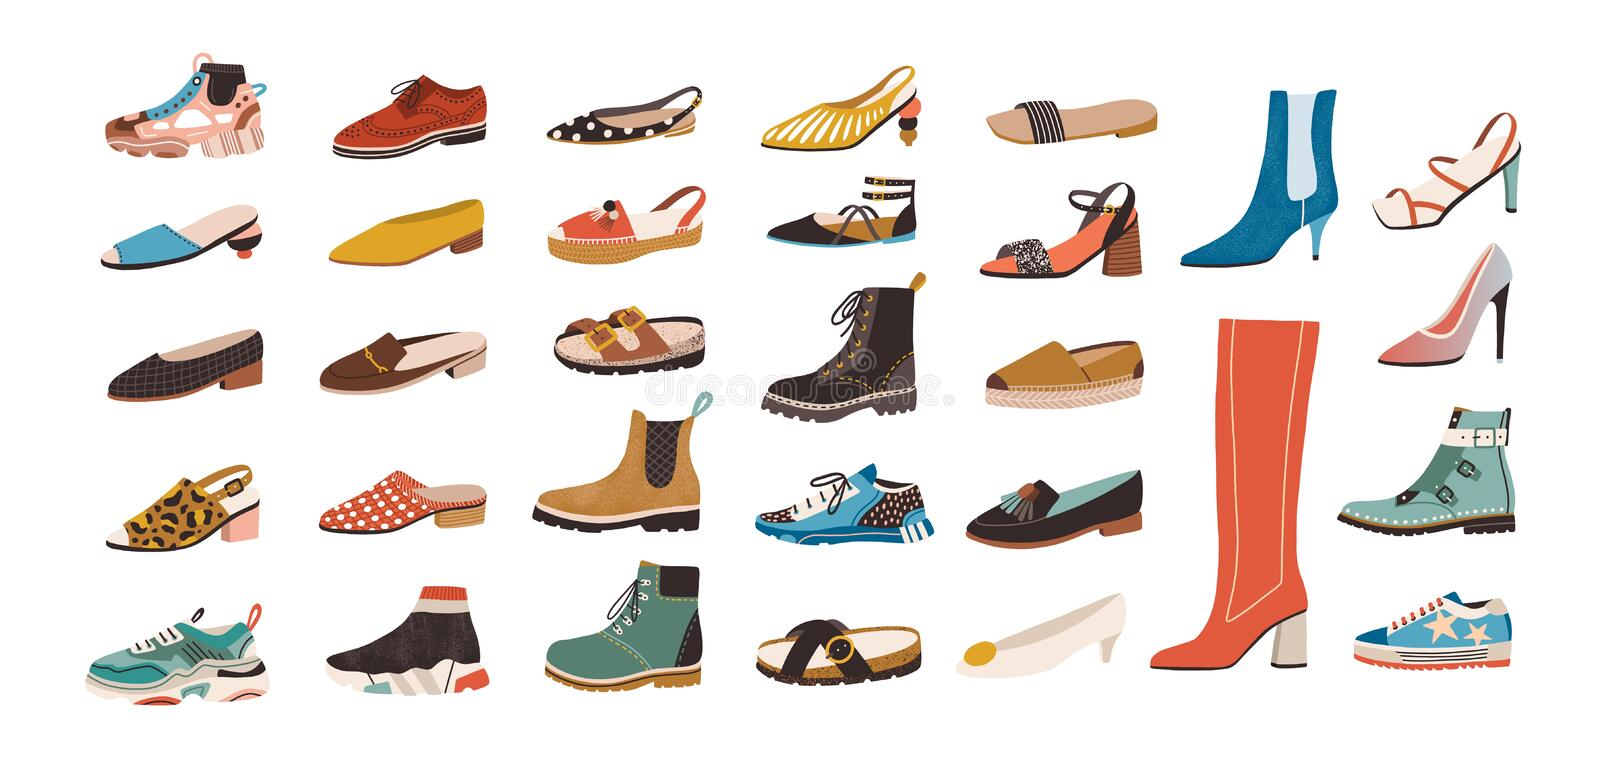 Collection of stylish elegant shoes and boots of different types isolated on white background. Bundle of trendy casual vector illustration